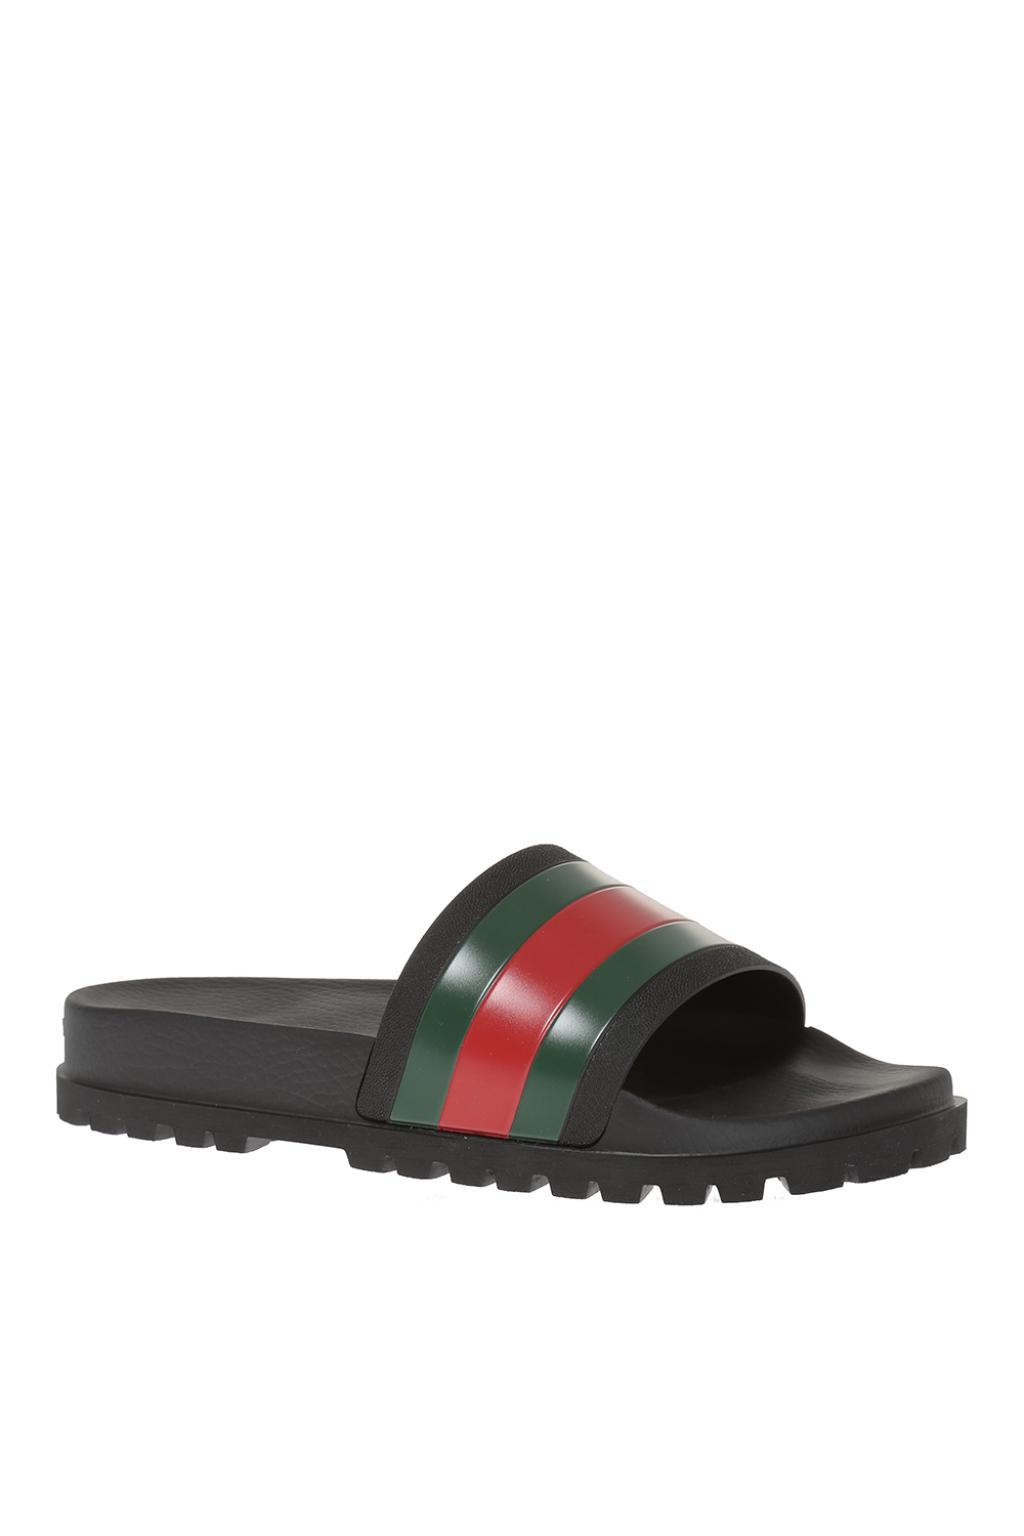 5c7cdf10a Lyst - Gucci Striped Web Rubber Slides in Black for Men - Save 30%